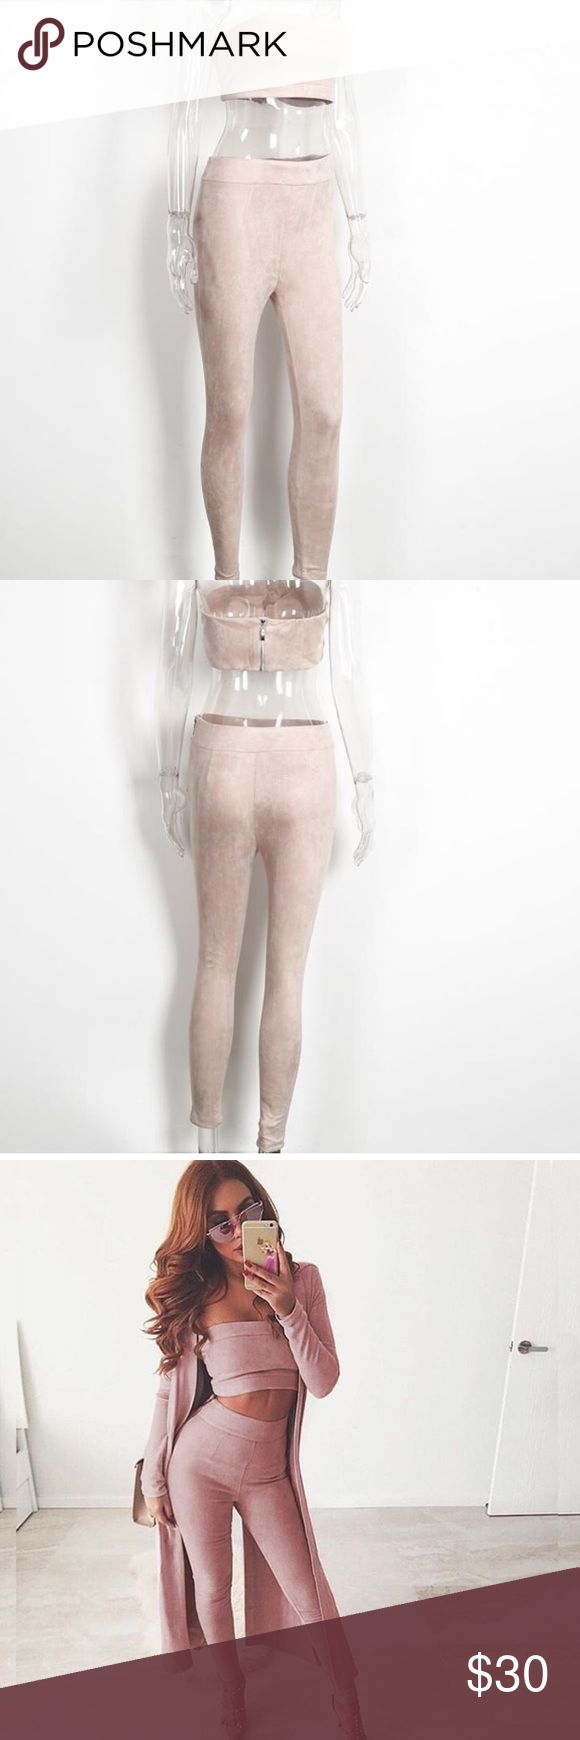 Nude Two piece suede pants set Check out this trendy two piece set. This is a nude pink tone  suede bandeau top with a zipper in the back and the matching pants that fit incredibly. The pants have a side zipper Pants Jumpsuits & Rompers